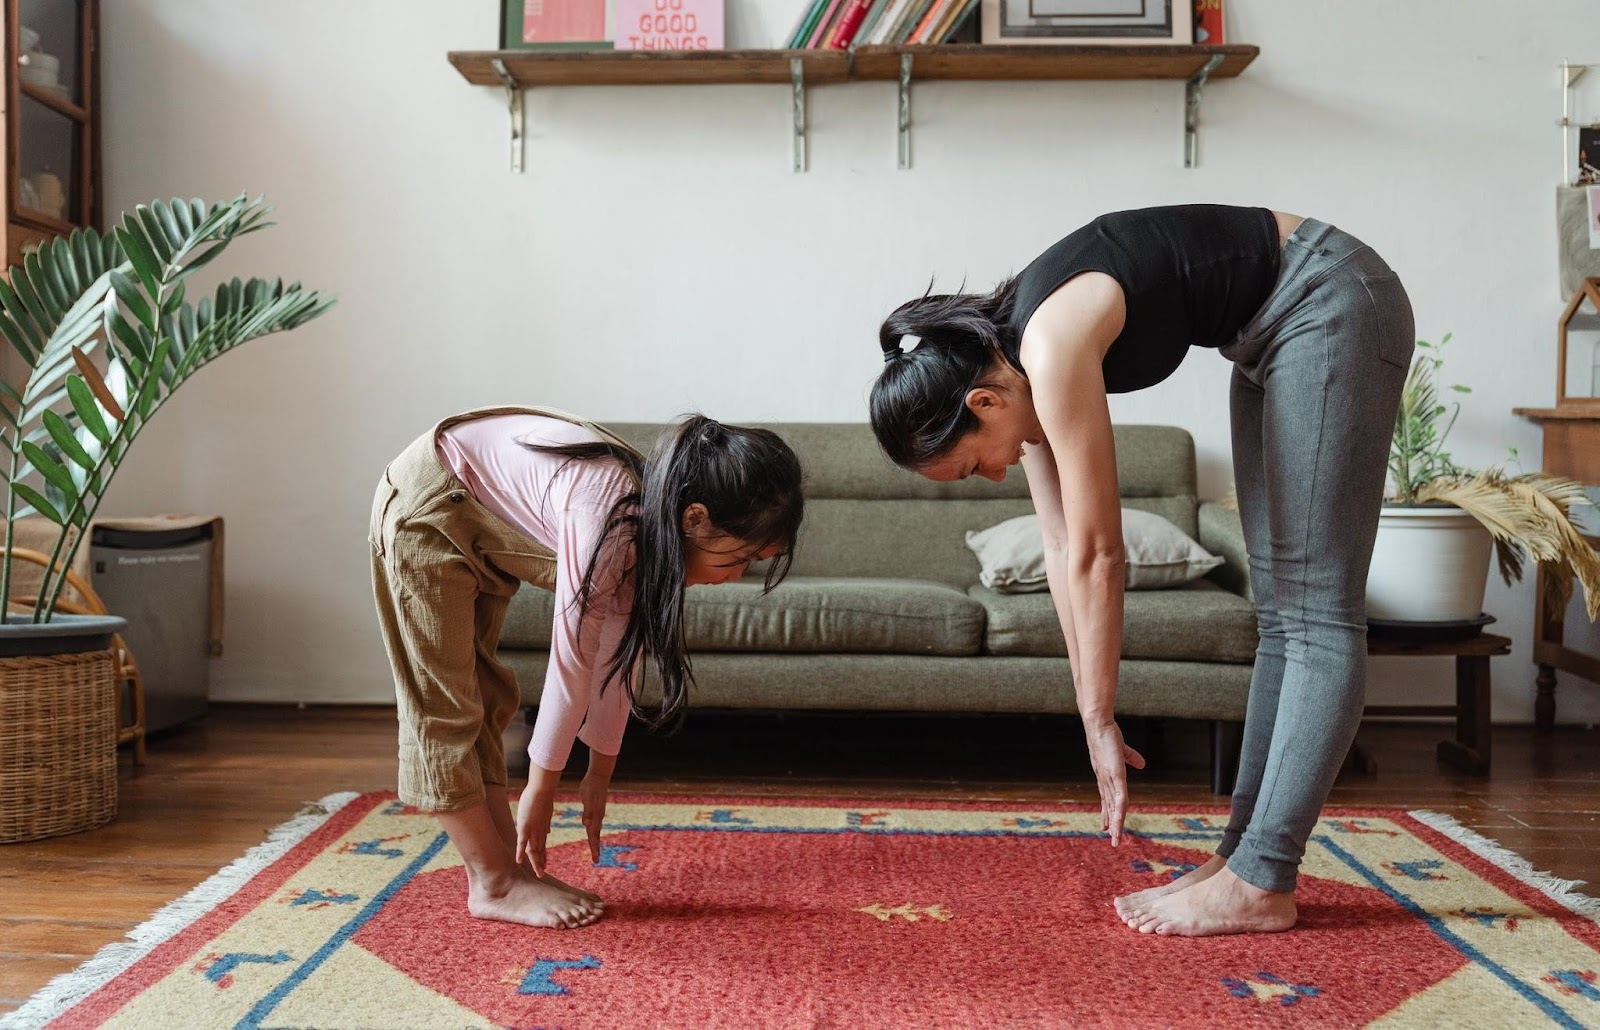 Mother and child stretching together in a stylish living room.